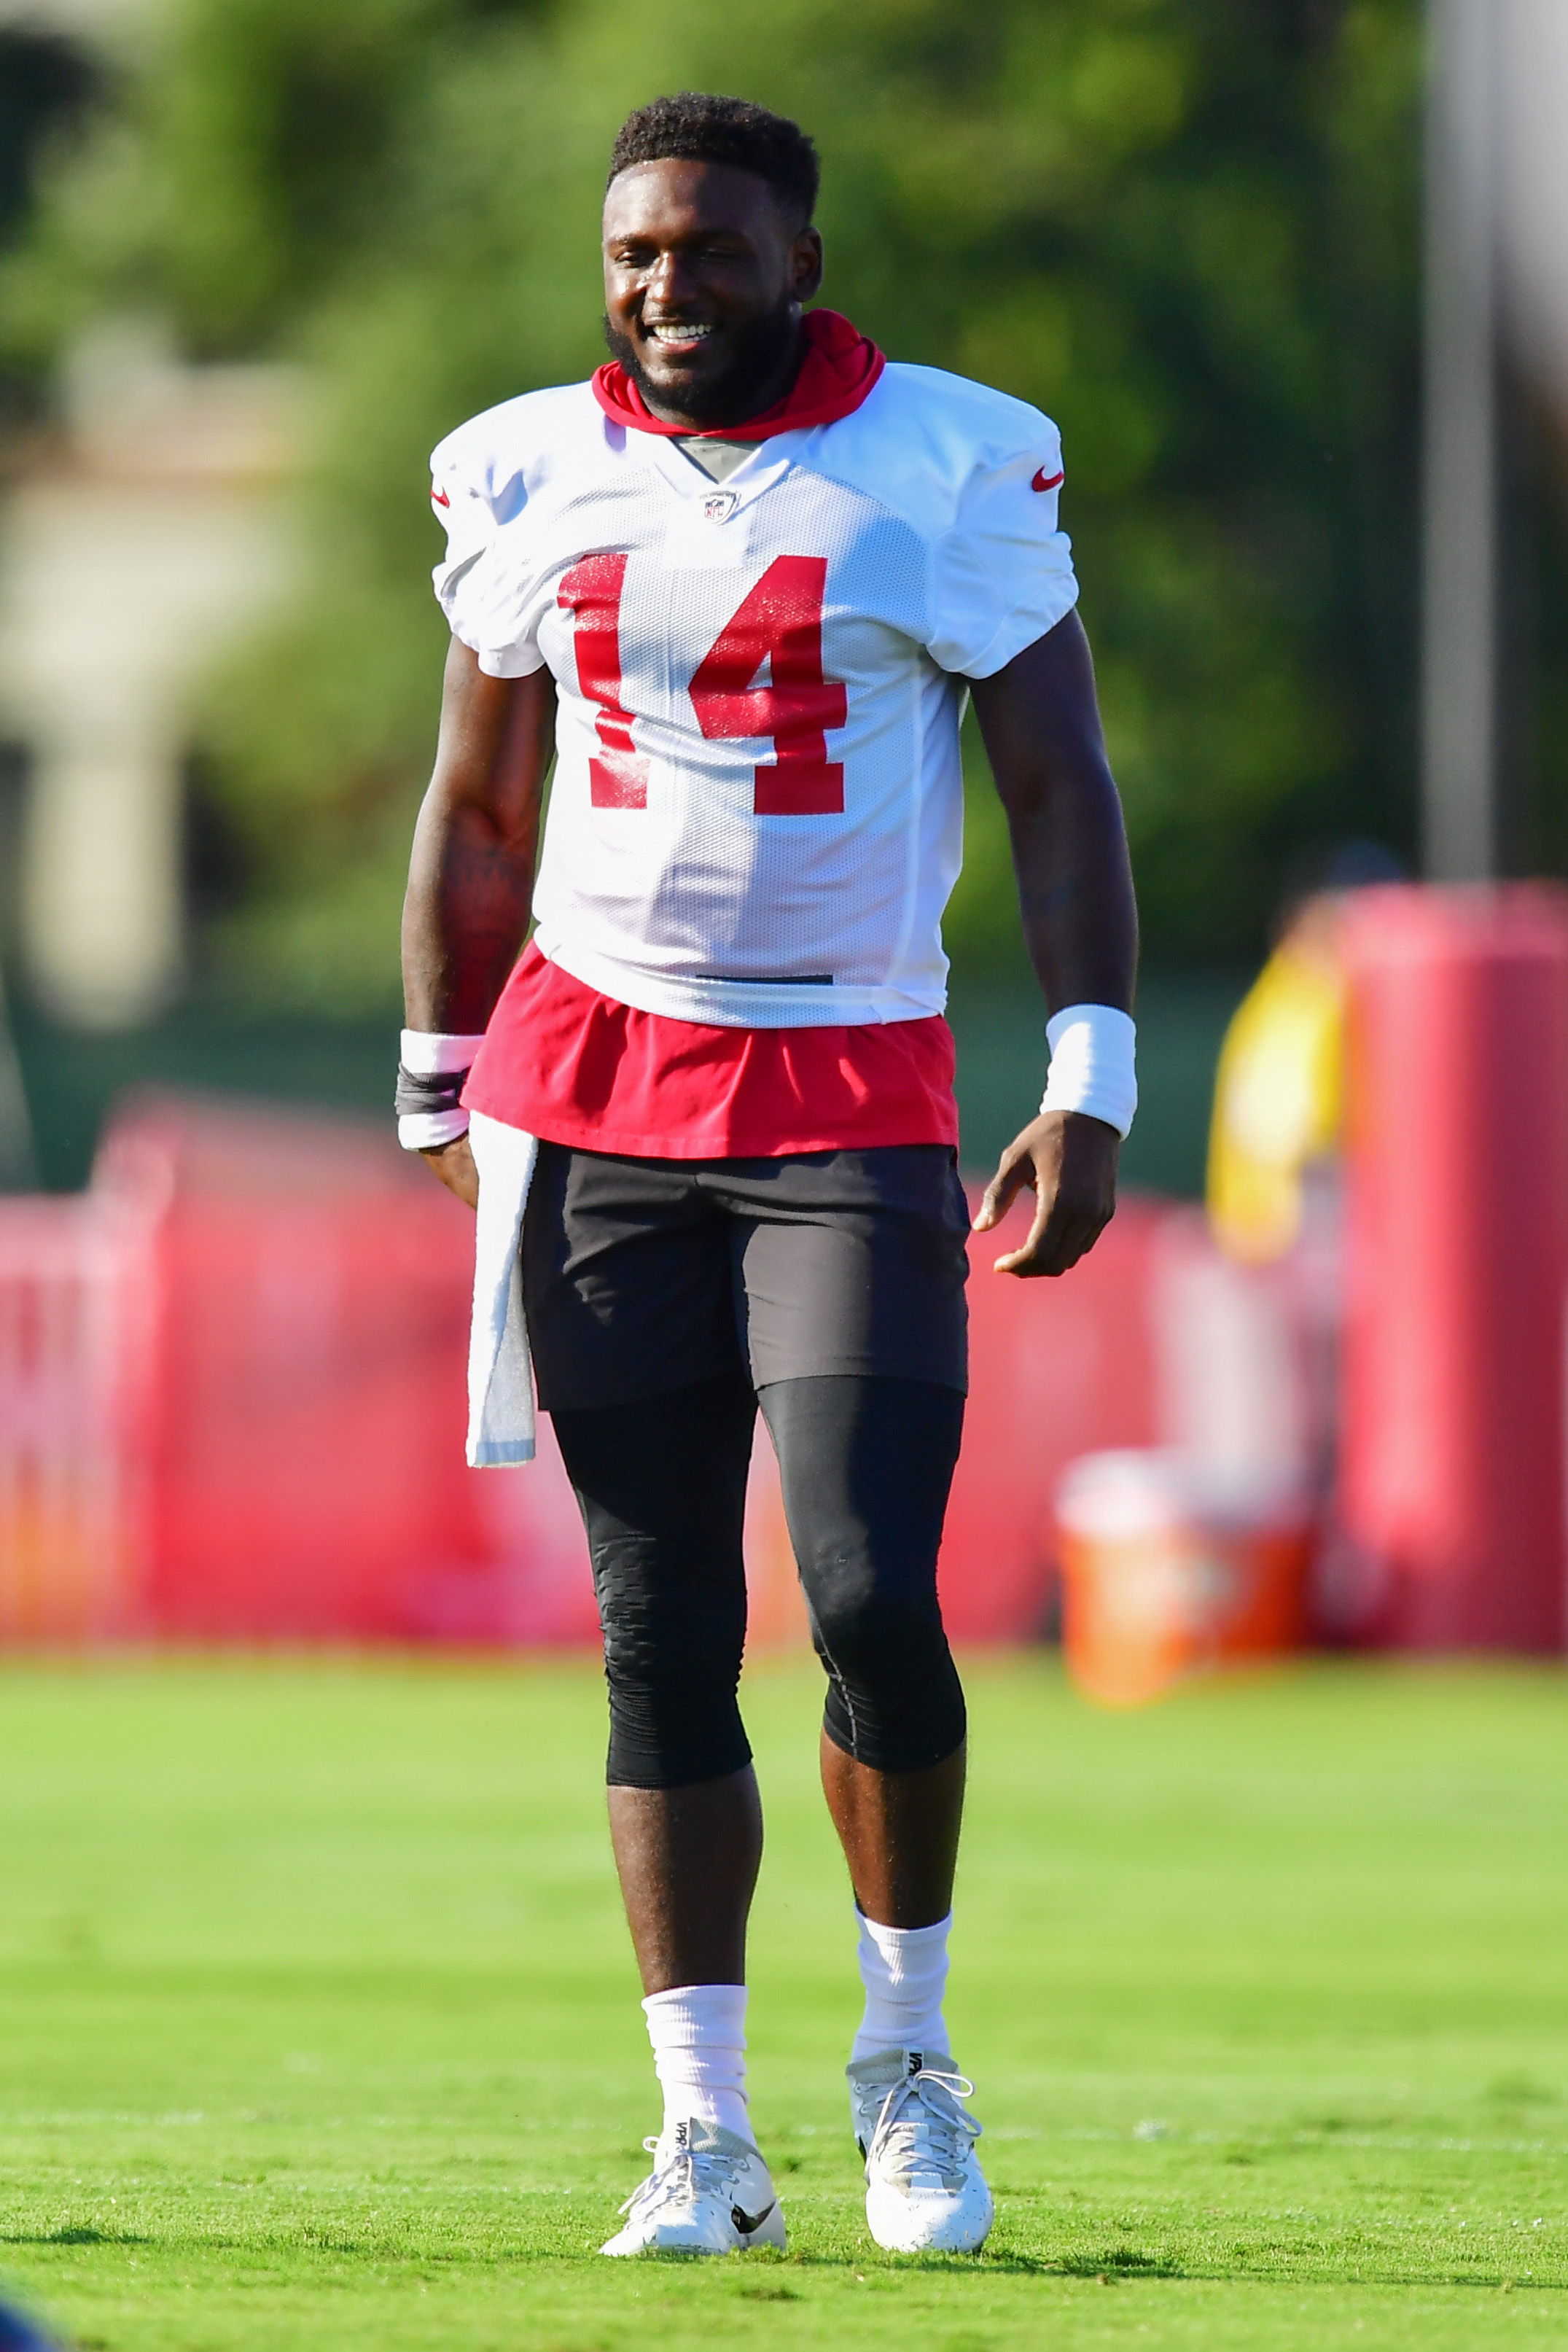 Chris Godwin #14 of the Tampa Bay Buccaneers warms up during training camp at AdventHealth Training Center on July 26, 2021 in Tampa, Florida.